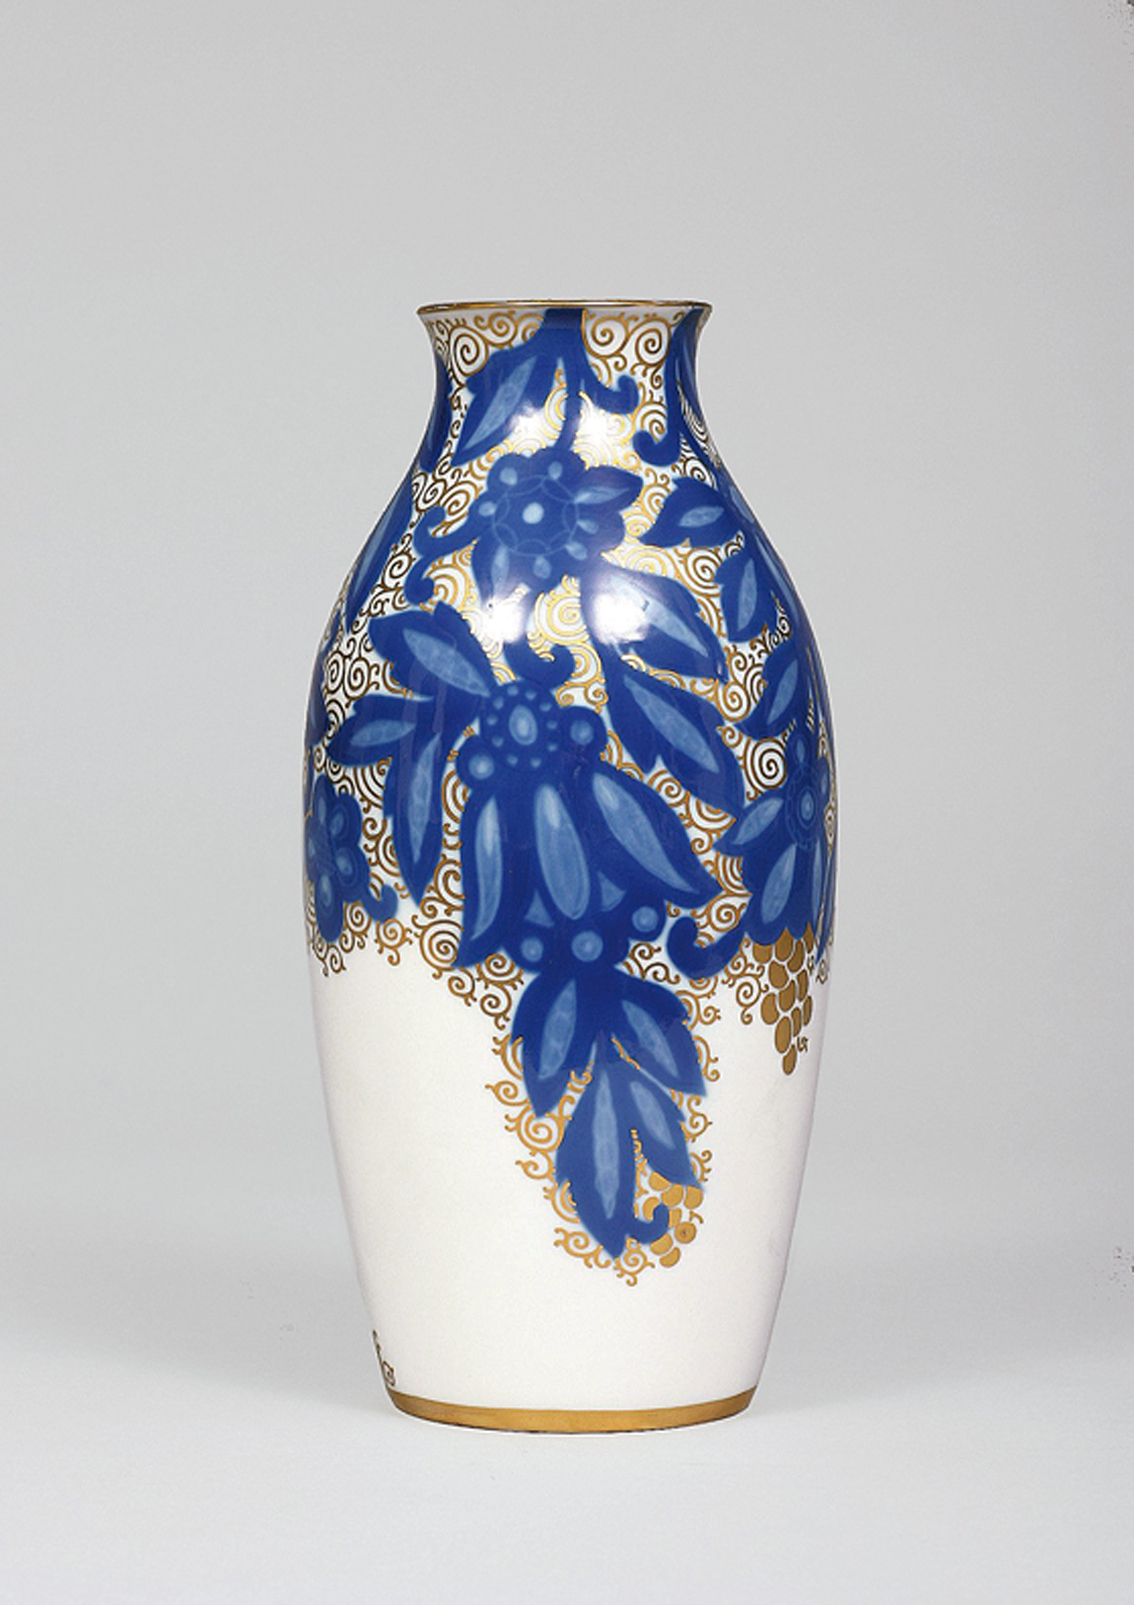 A vase decorated with 'Rosari' patterns